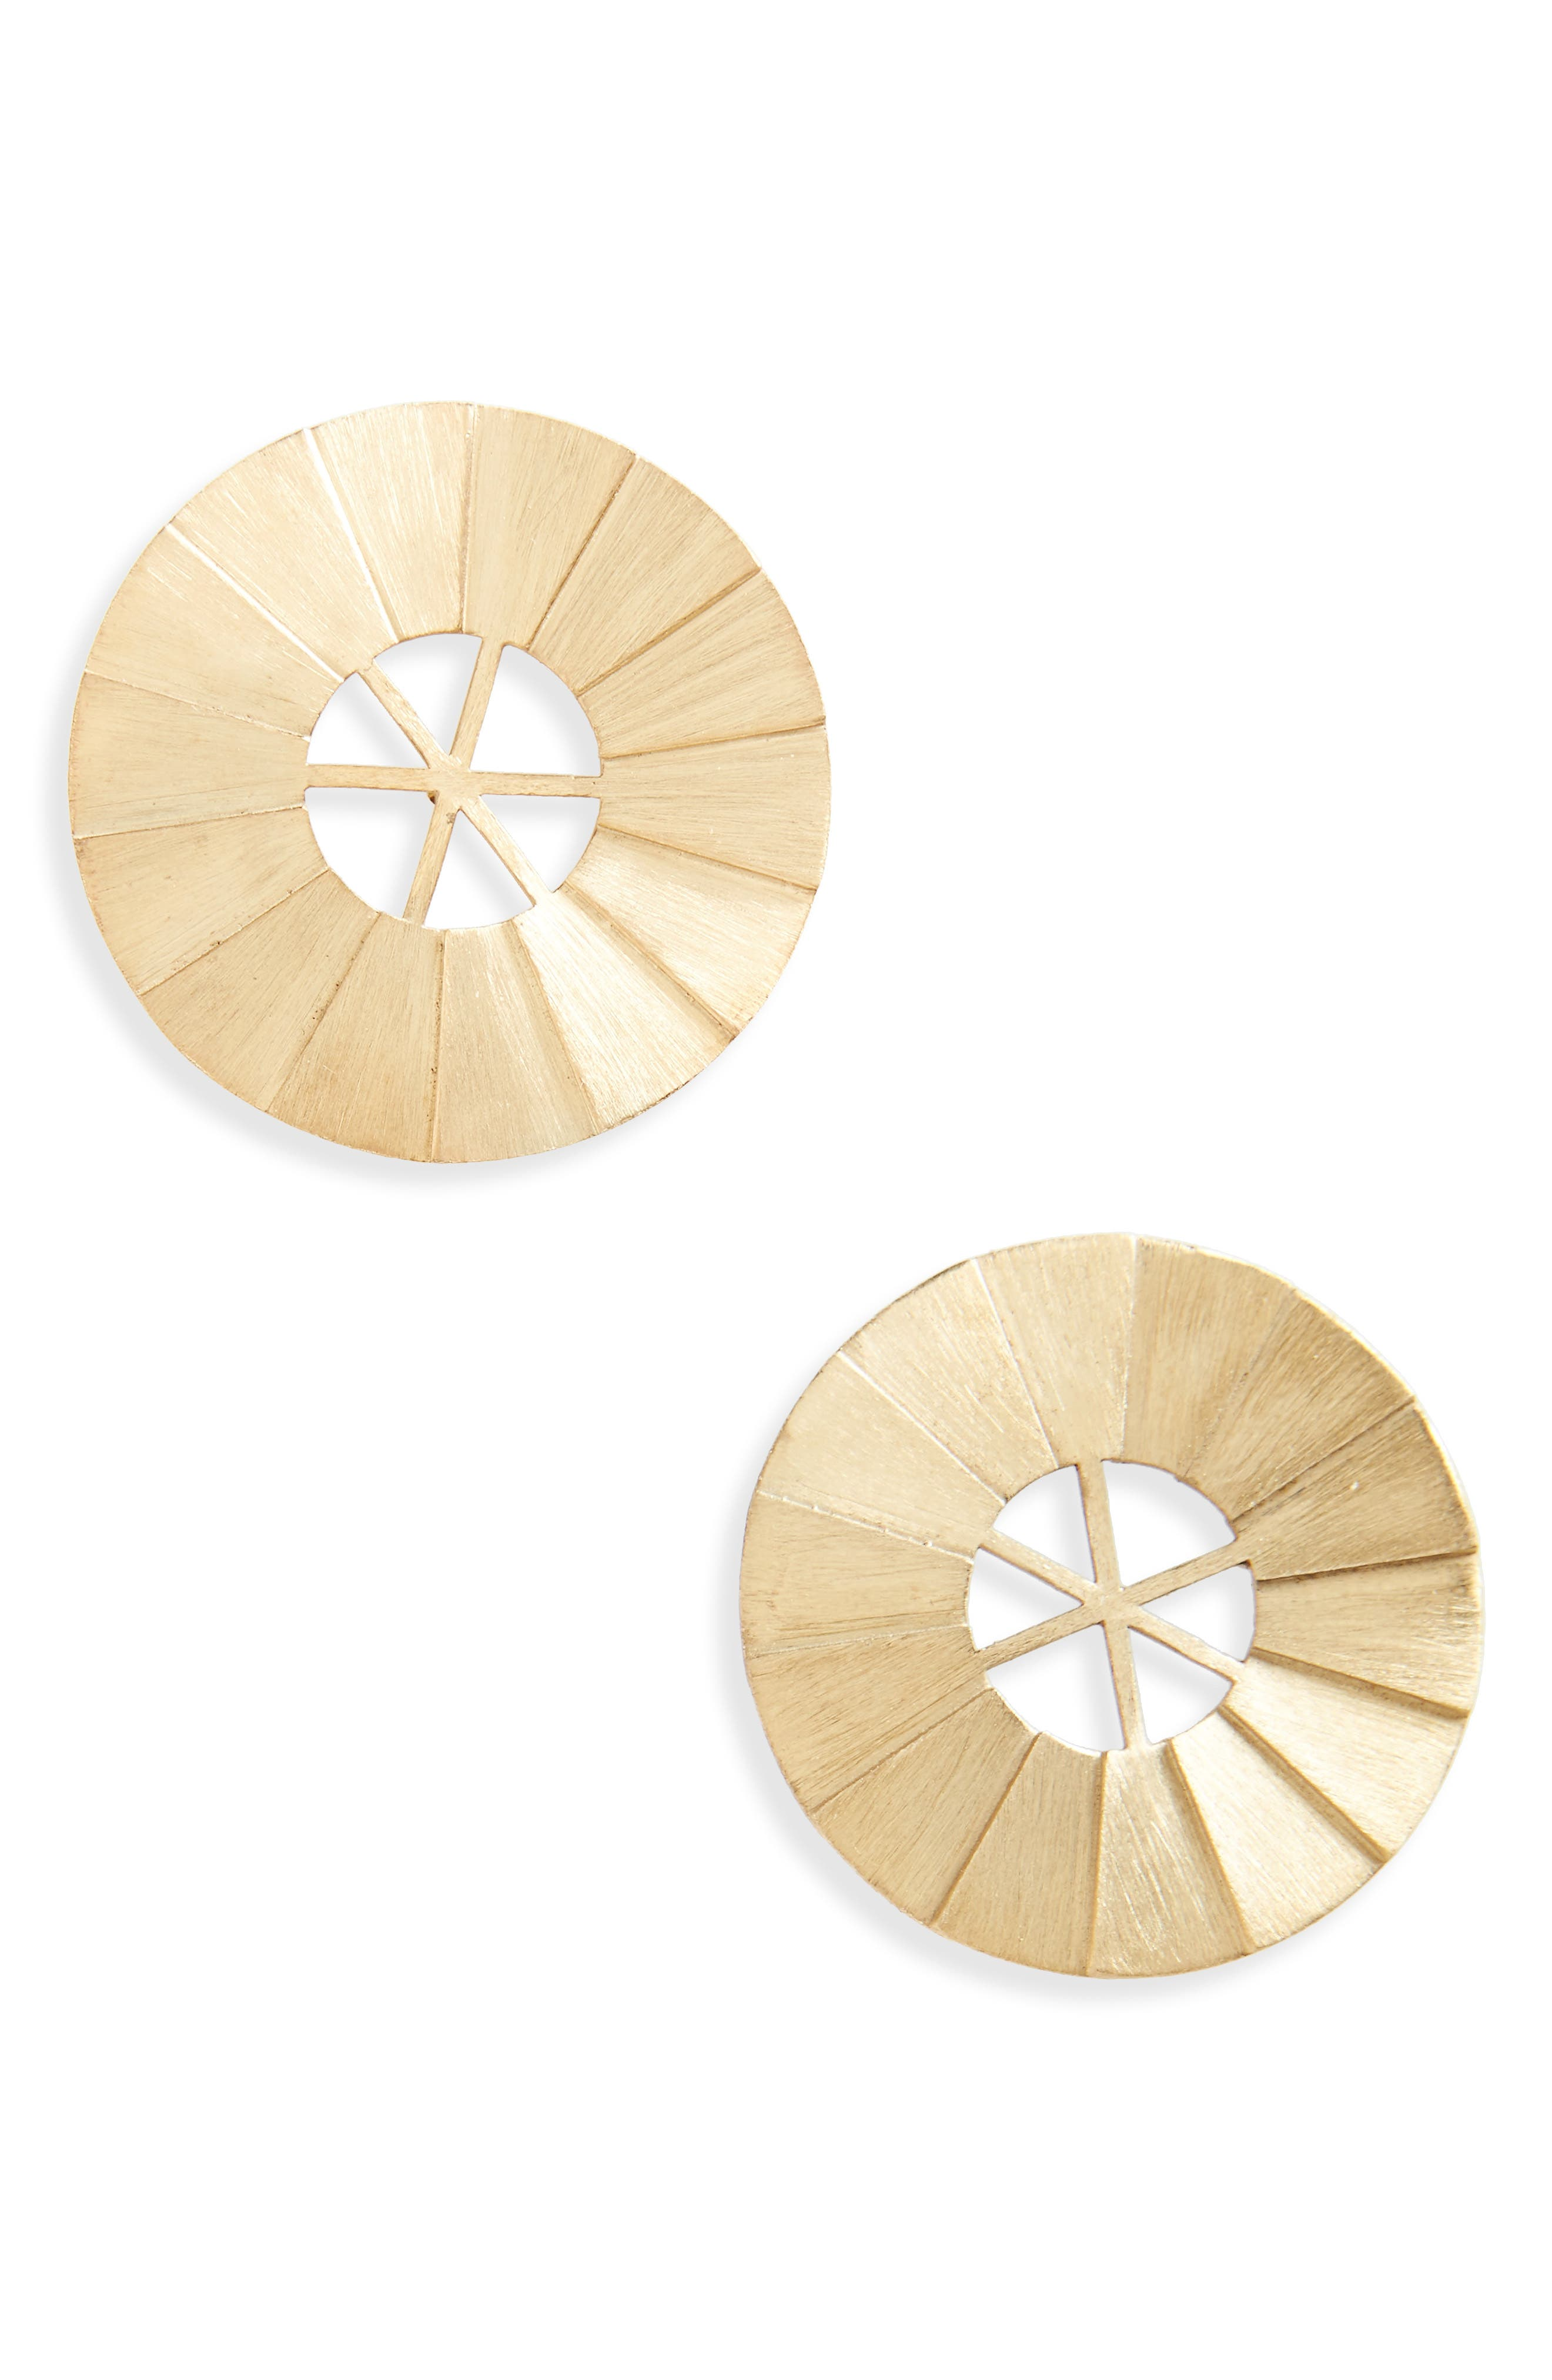 Windmill Brushed Vermeil Statement Earrings,                         Main,                         color, Brushed Vermeil